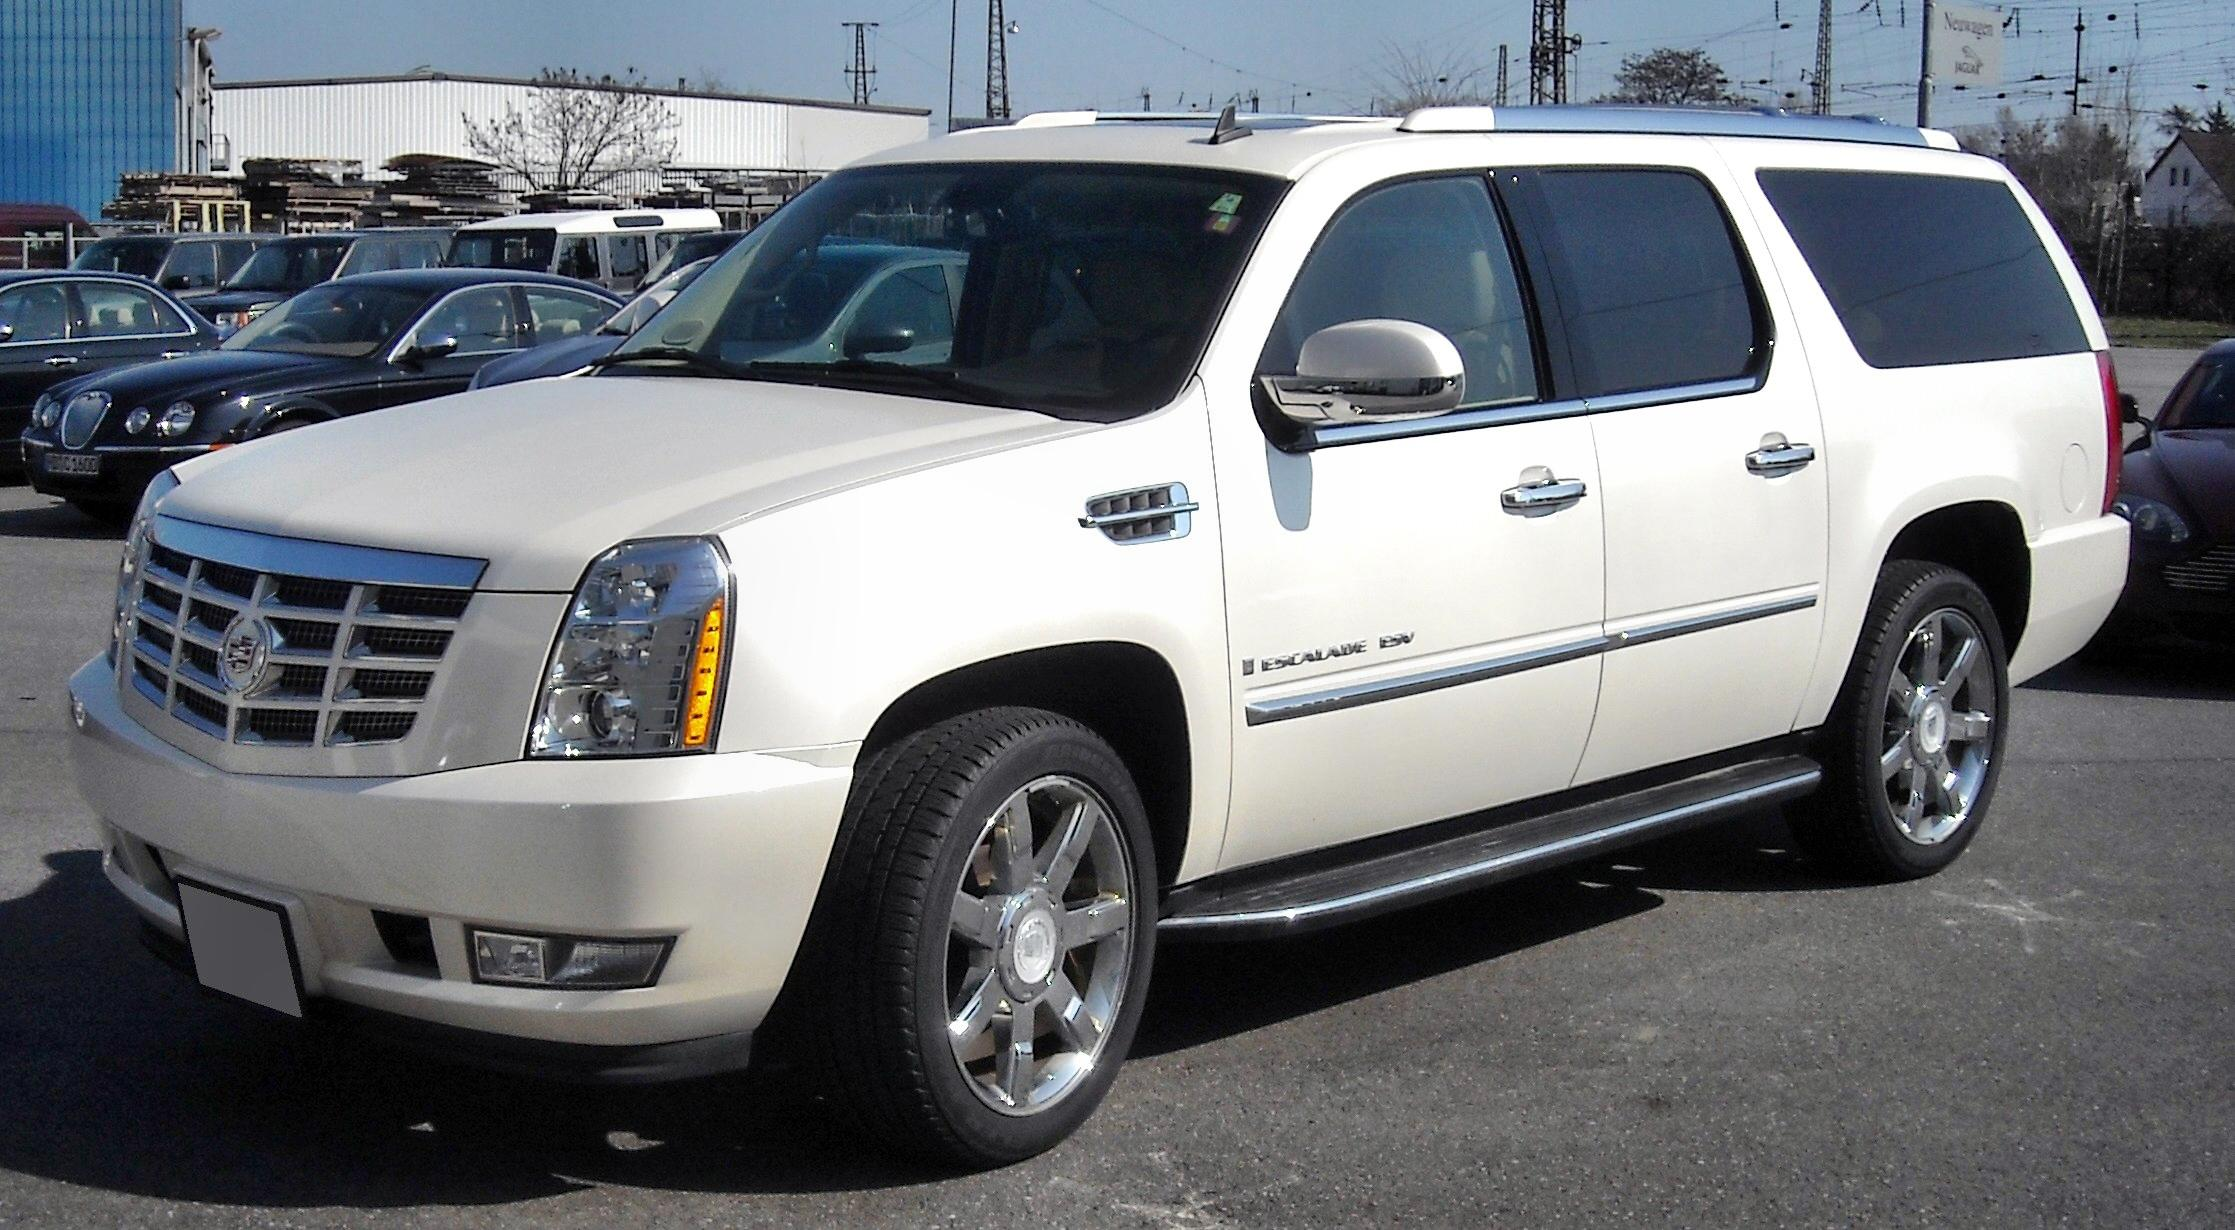 escalade sales js sale fremont luxury large city in cadillac ne for auto